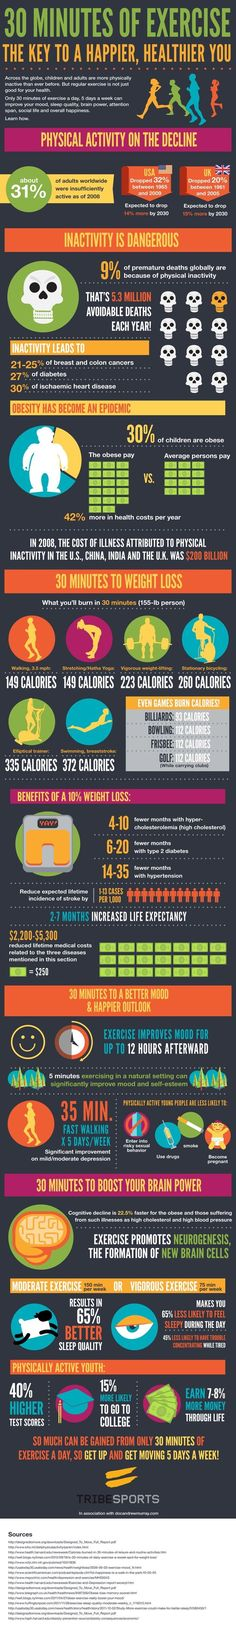 30 Minutes of Exercise: The key to a happier, healthier you! #infographic Check out the website for more